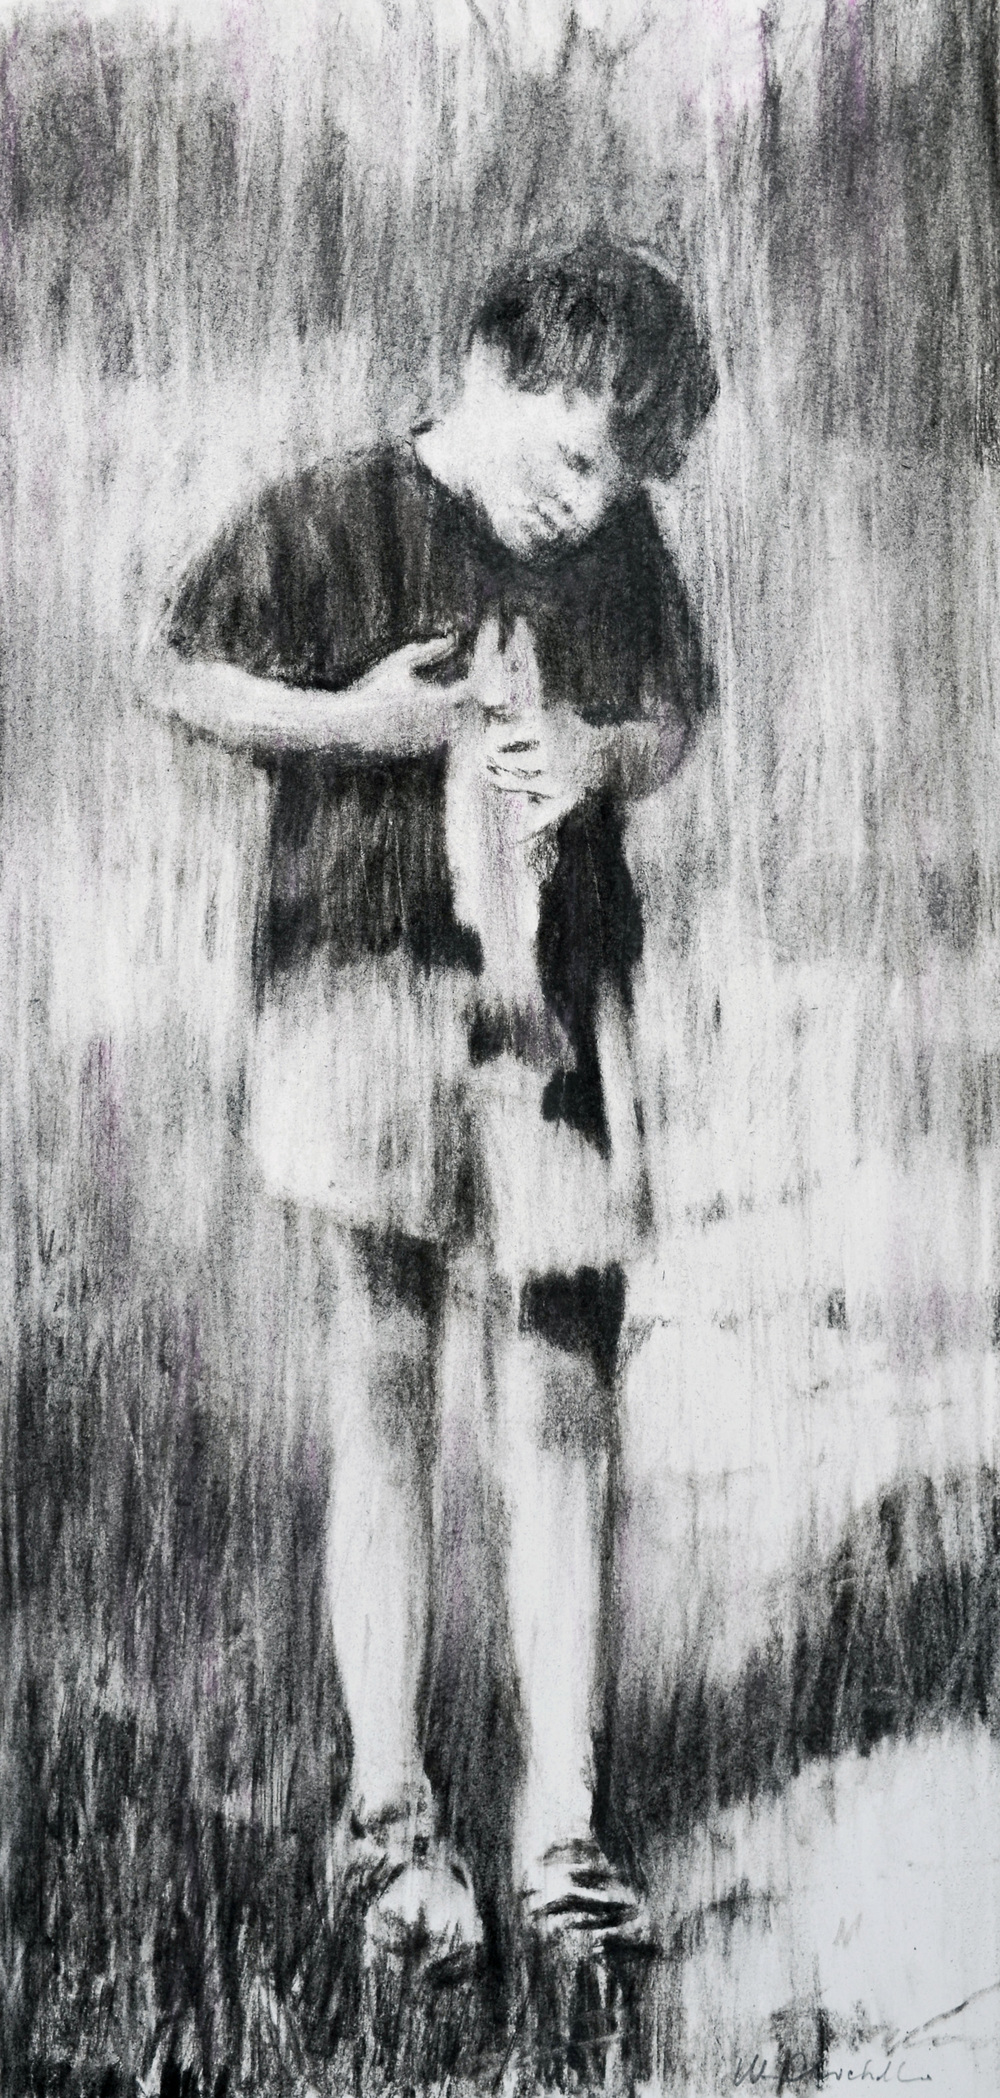 "Boy with Trout, William Chickillo, 11"" x 22 1/2"" charcoal drawing"